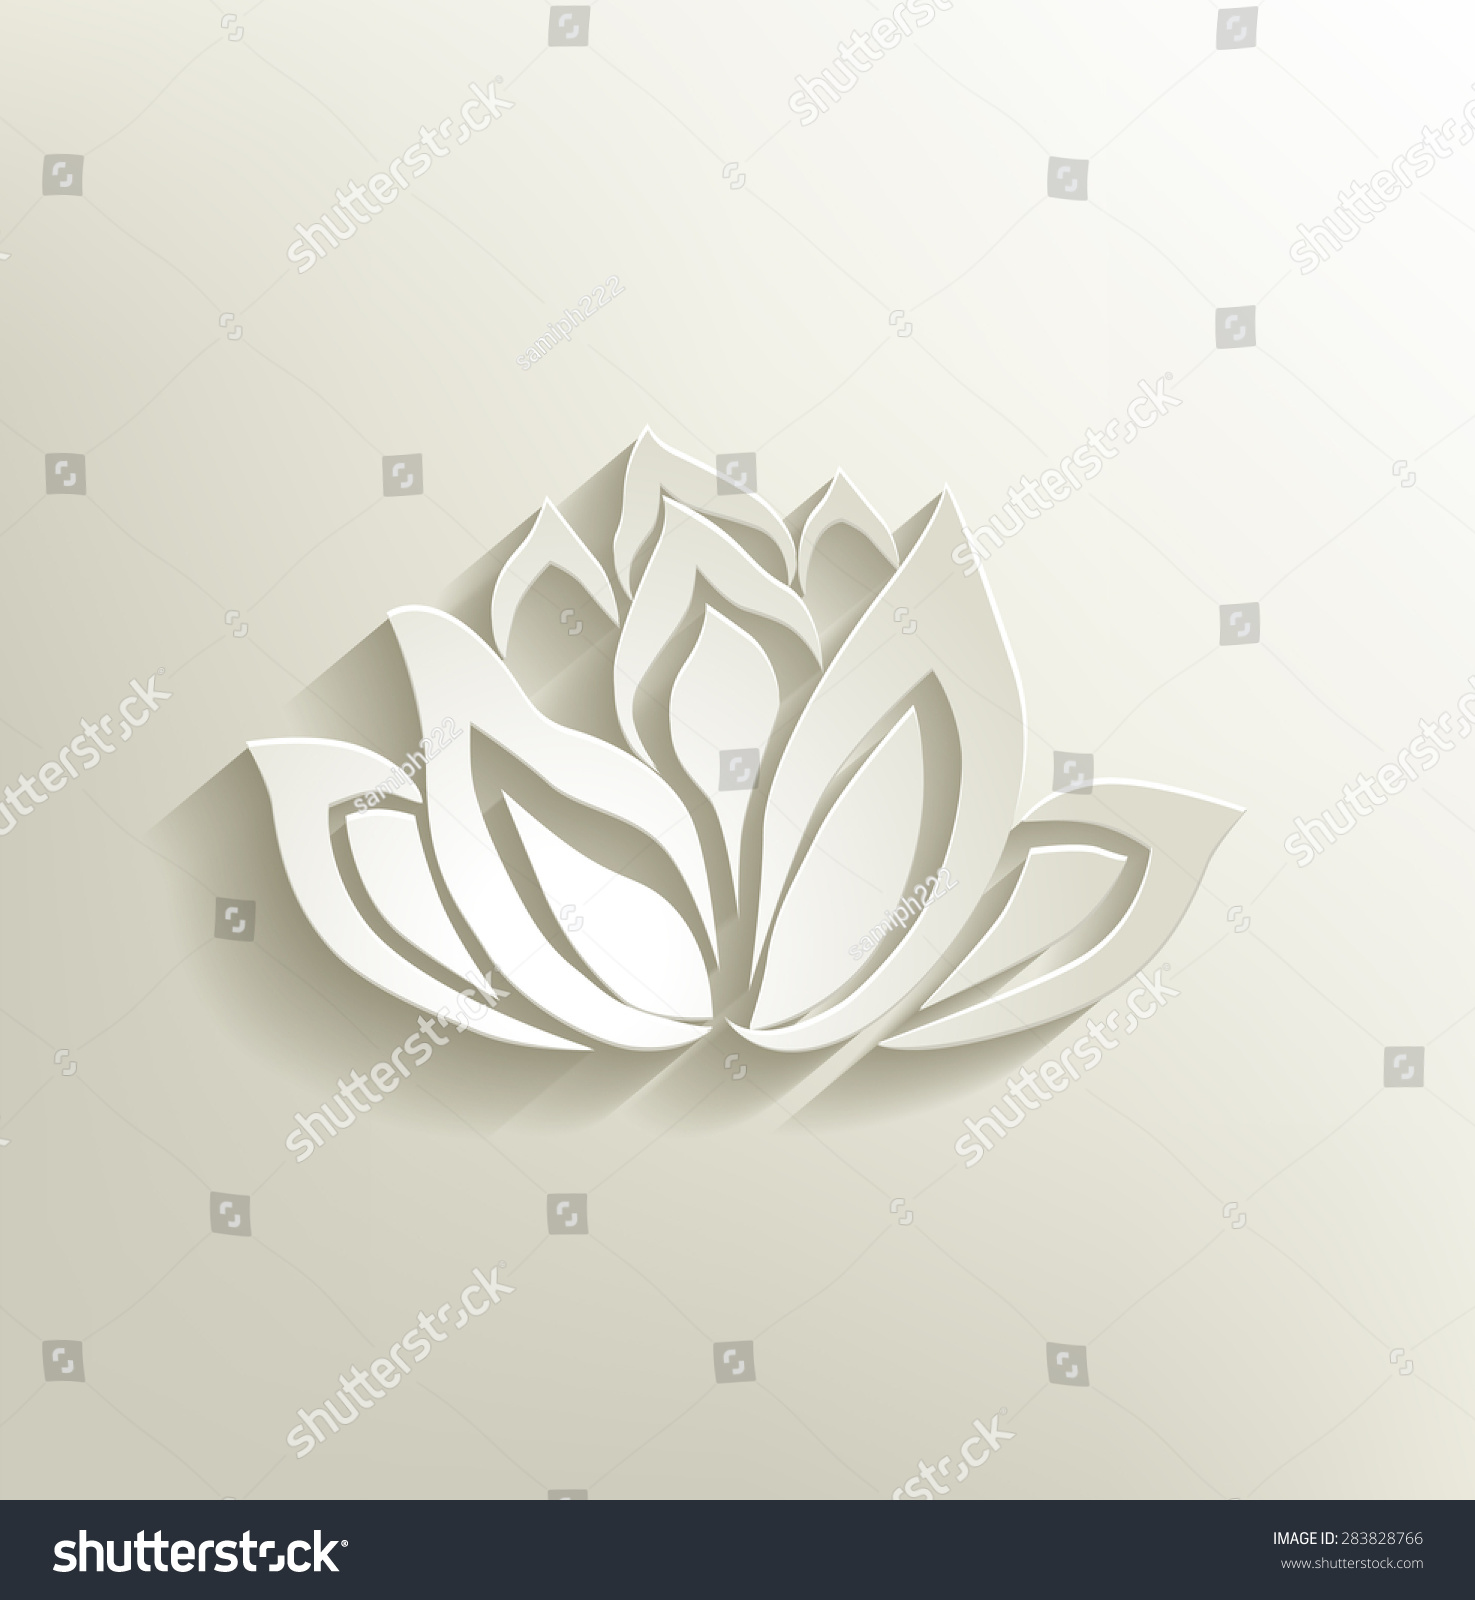 Lotus flower lotus flower design spa stock vector 283828766 lotus flower lotus flower design for spa yoga class resort vector illustration izmirmasajfo